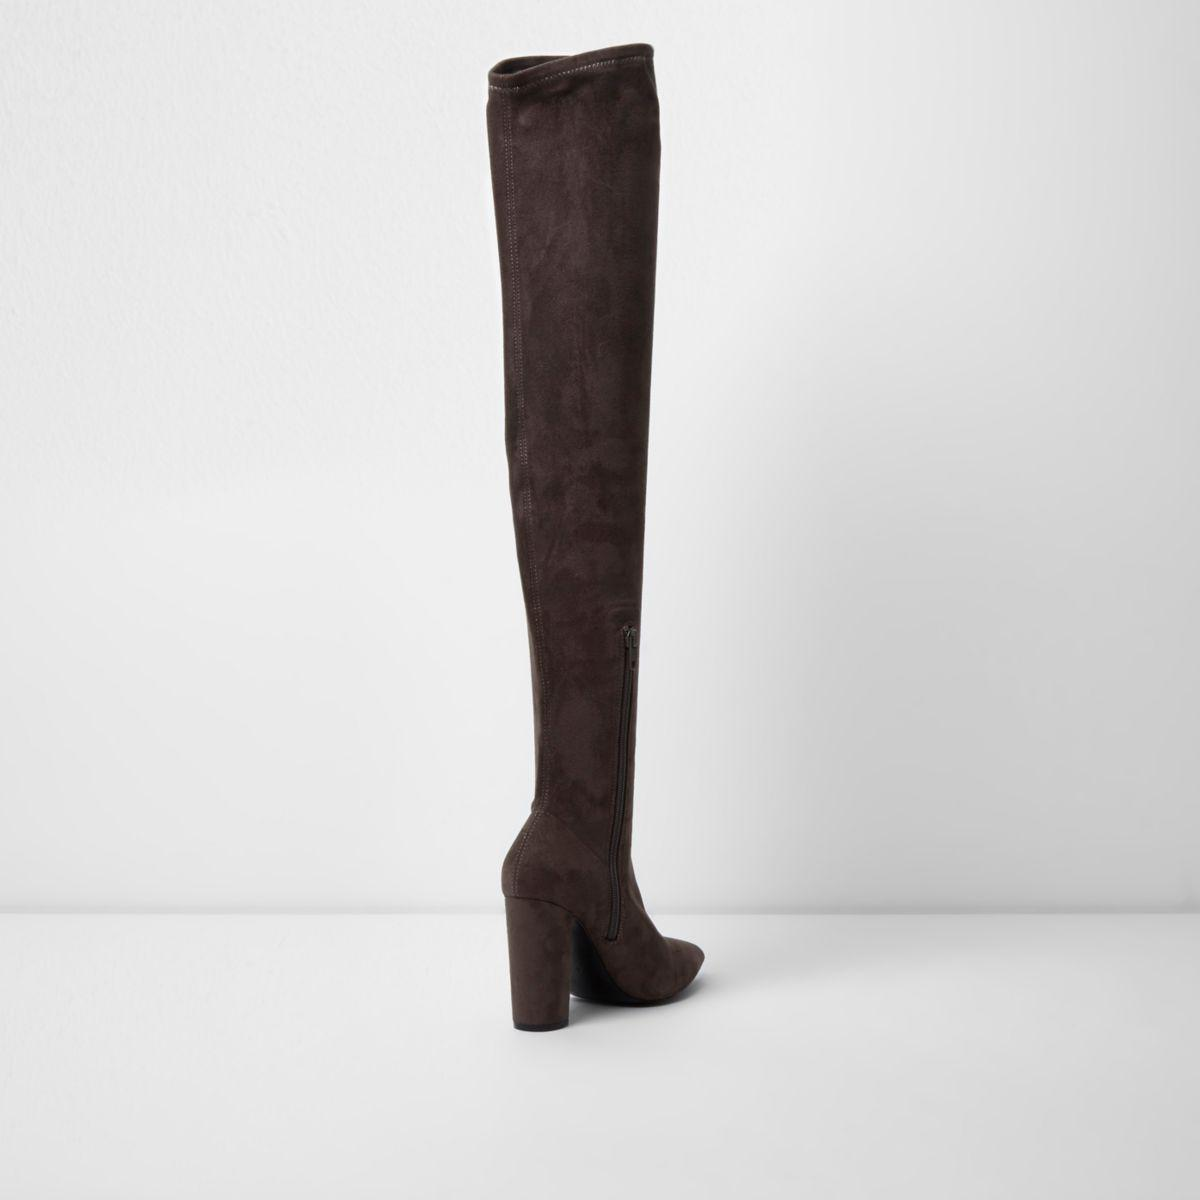 d5482602b0e Lyst - River Island Dark Grey Faux Suede Over The Knee Boots Dark ...